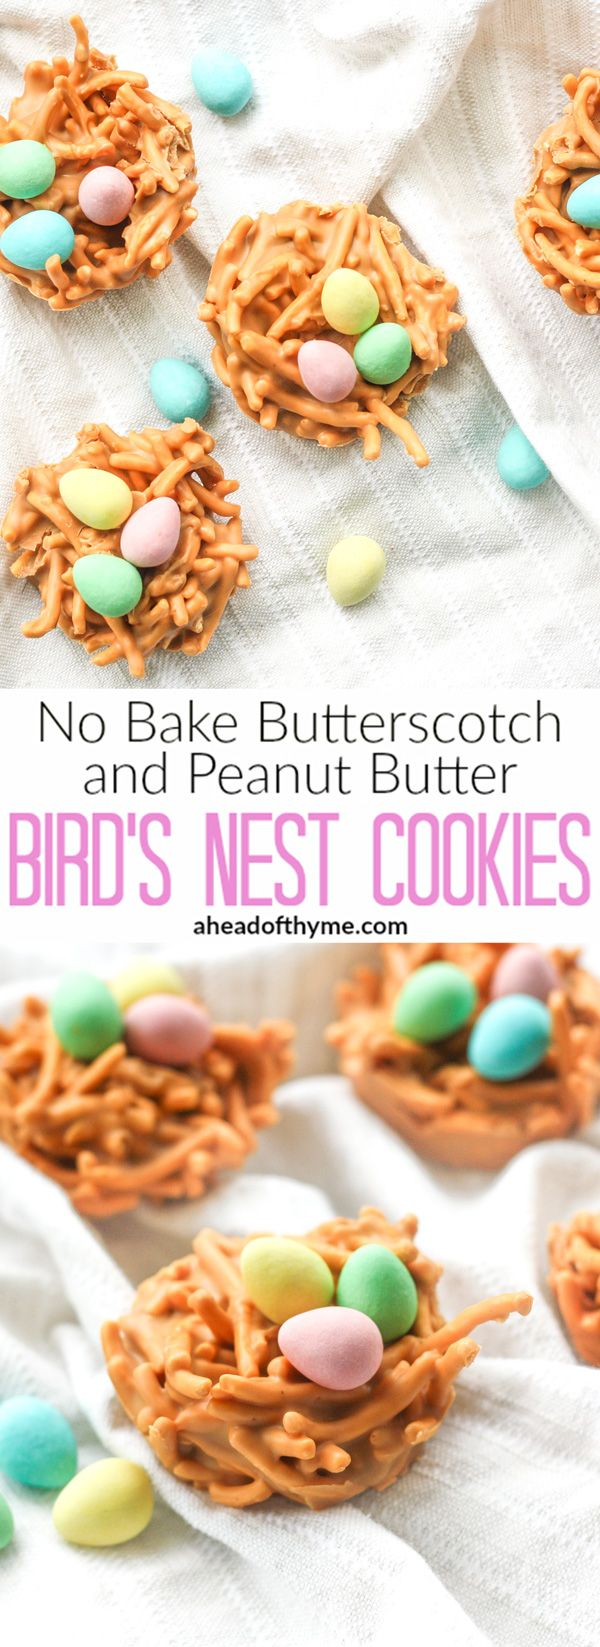 No Bake Butterscotch and Peanut Butter Bird's Nest Cookies: Spring is in the air…